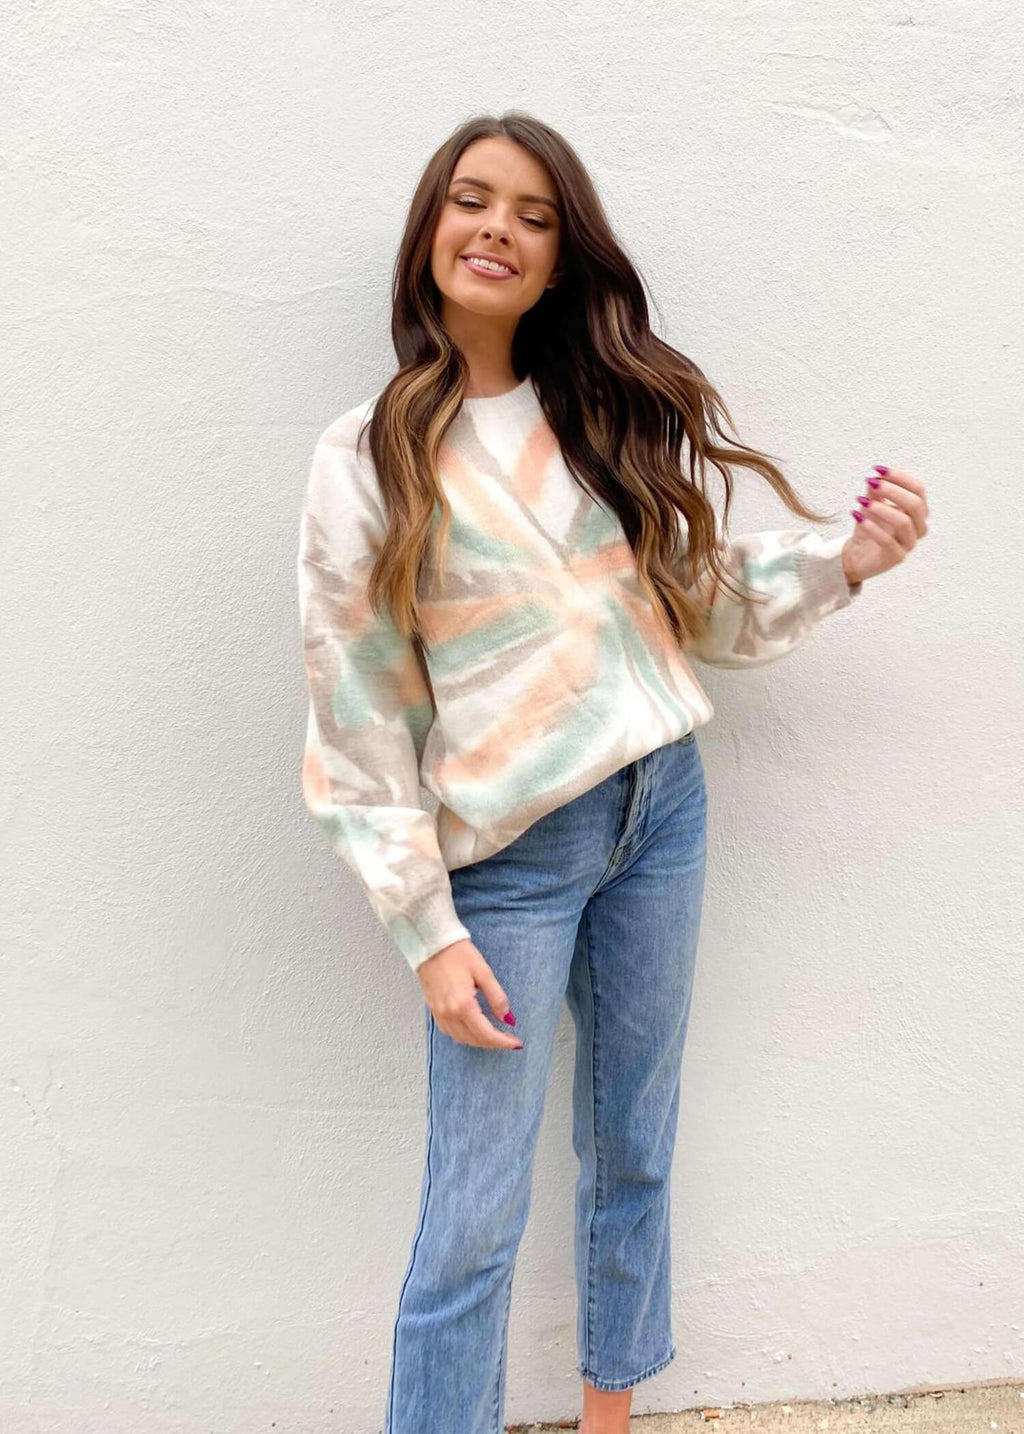 Cuddle Me Up Sweater - Cream/Tie Dye Multi